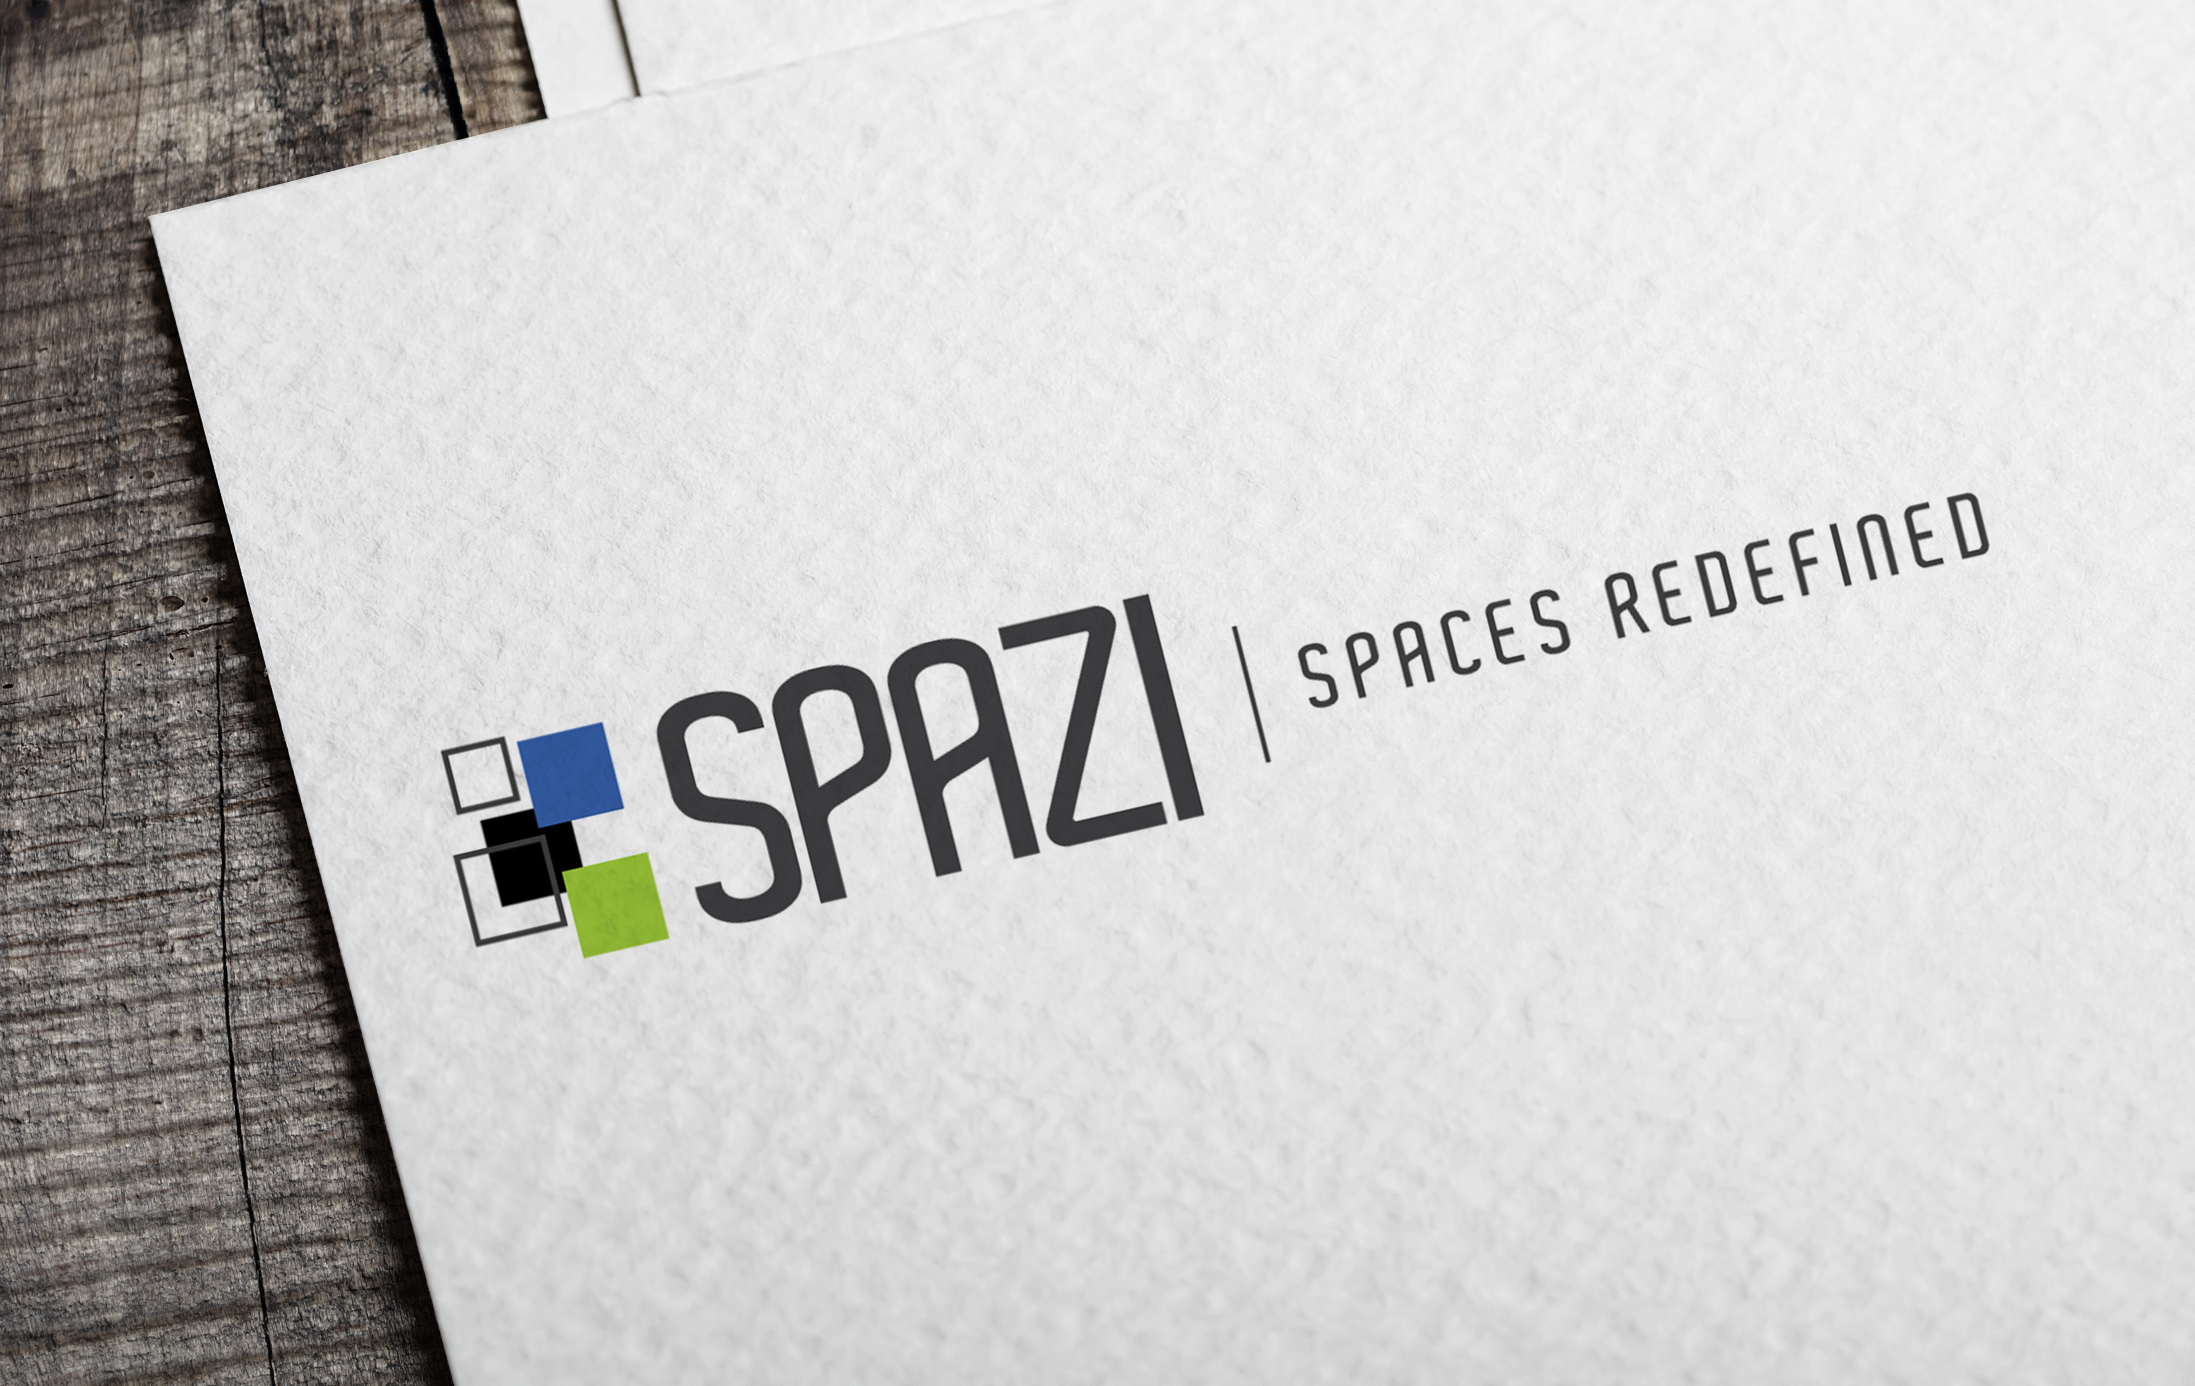 SPAZI - Spaces redefined - logo design